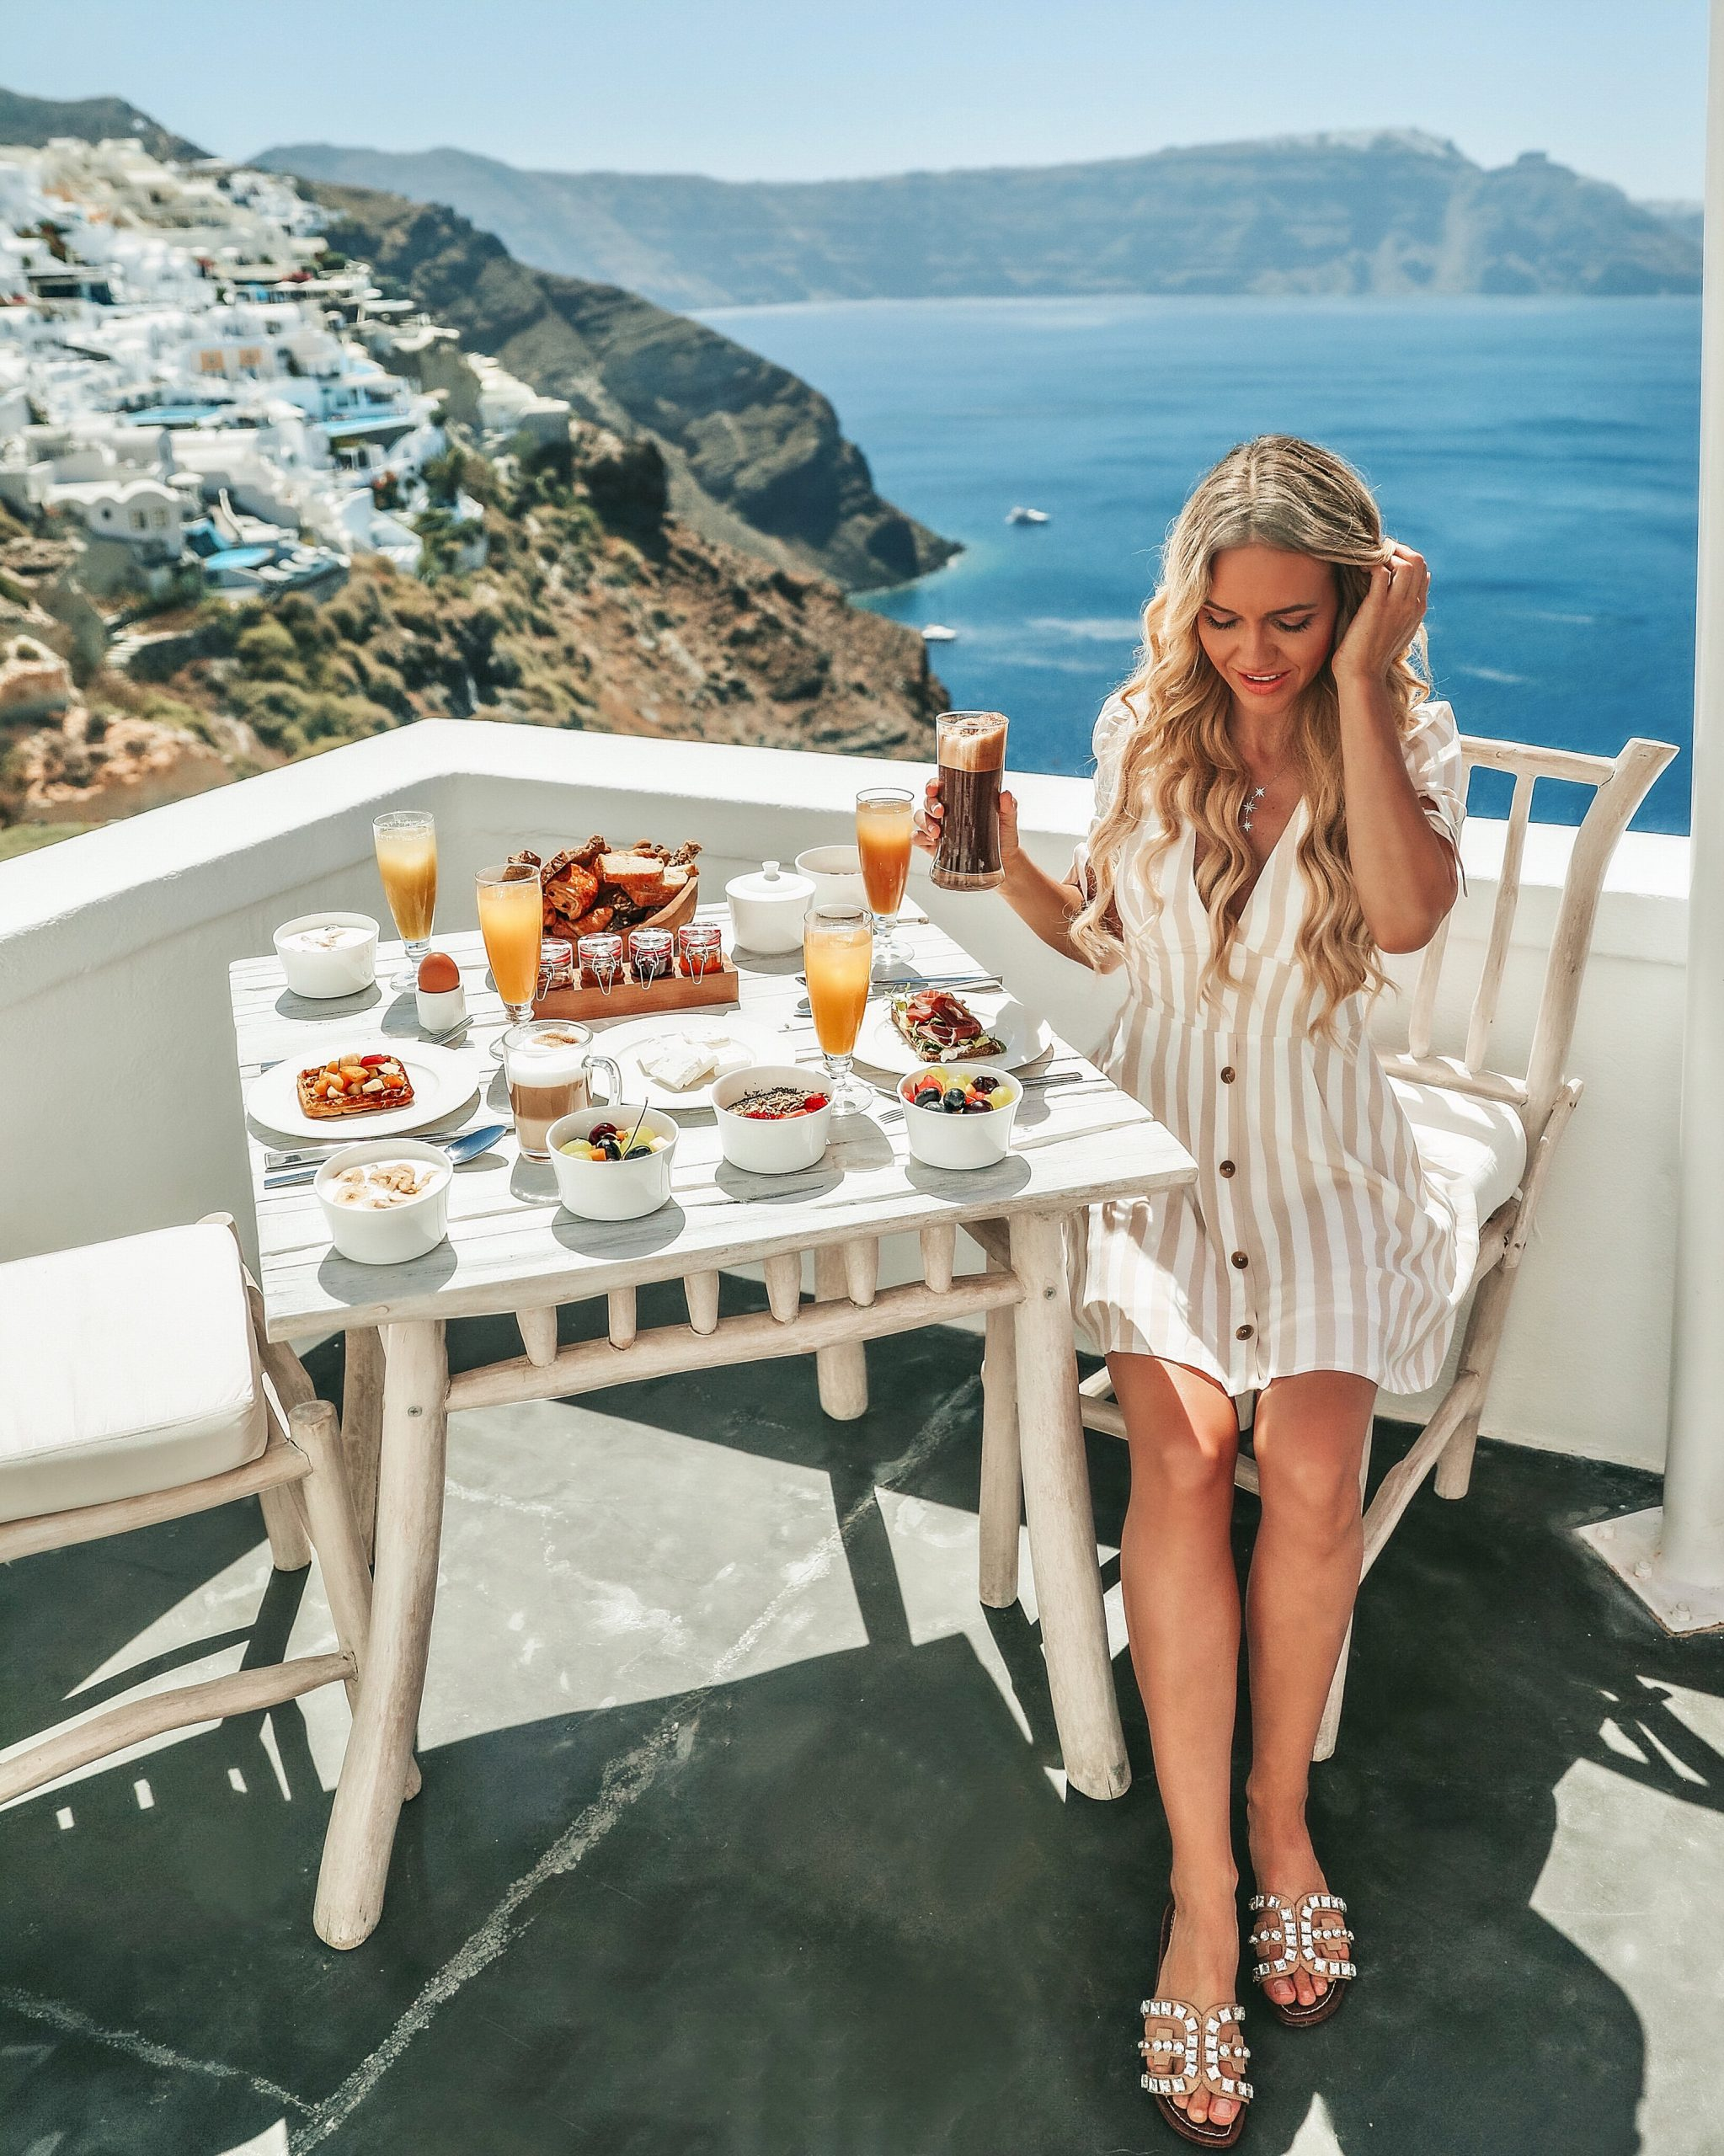 Balcony Breakfast view from Andronis Luxury Suites